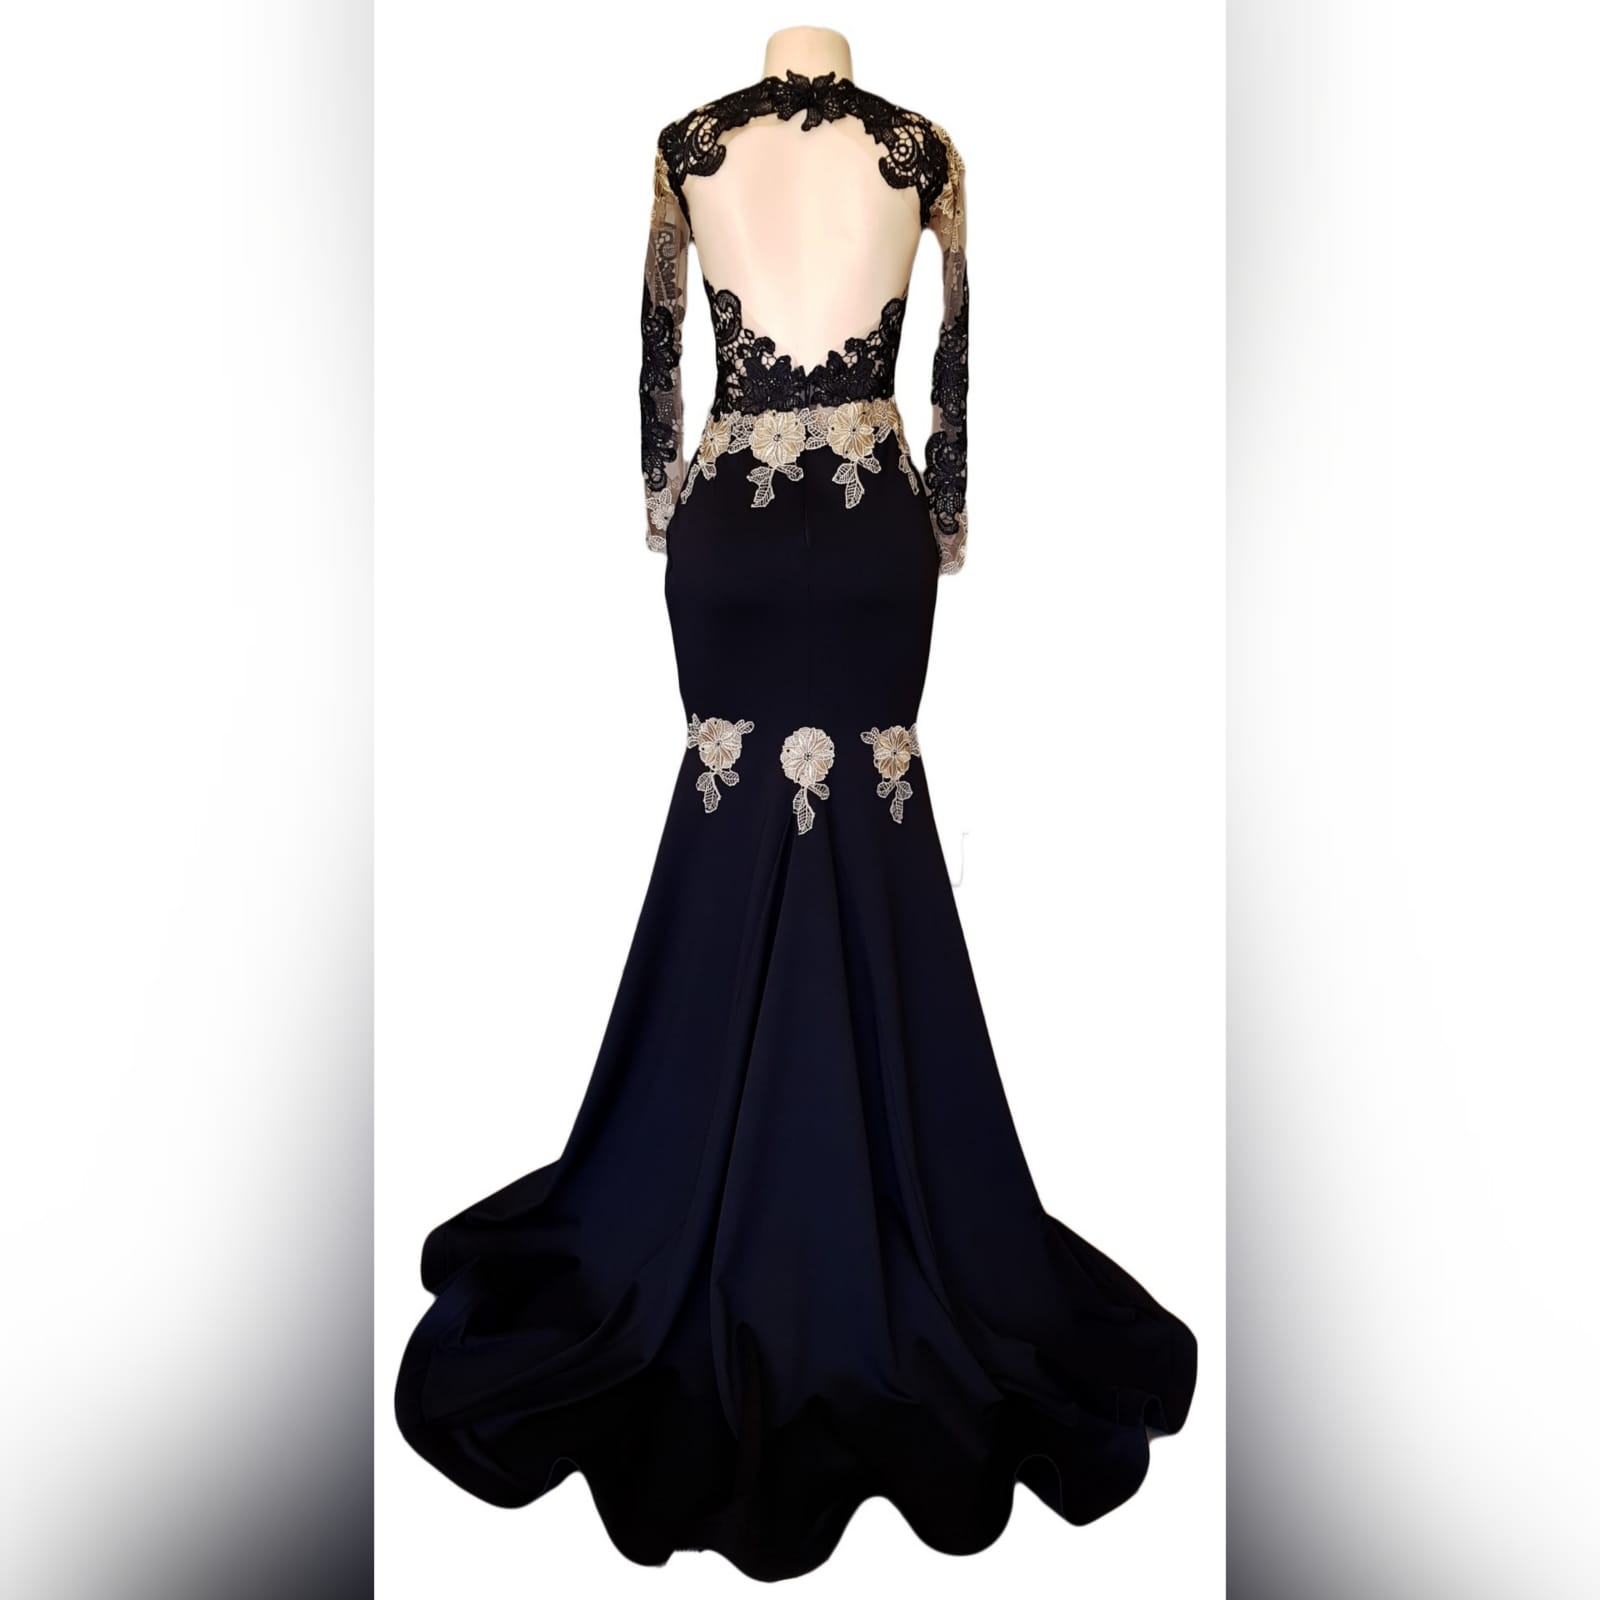 Black & gold soft mermaid prom dress 7 black & gold soft mermaid prom dress with an illusion lace bodice and long sleeves. With an open back and a train. Lace detailed with beads.